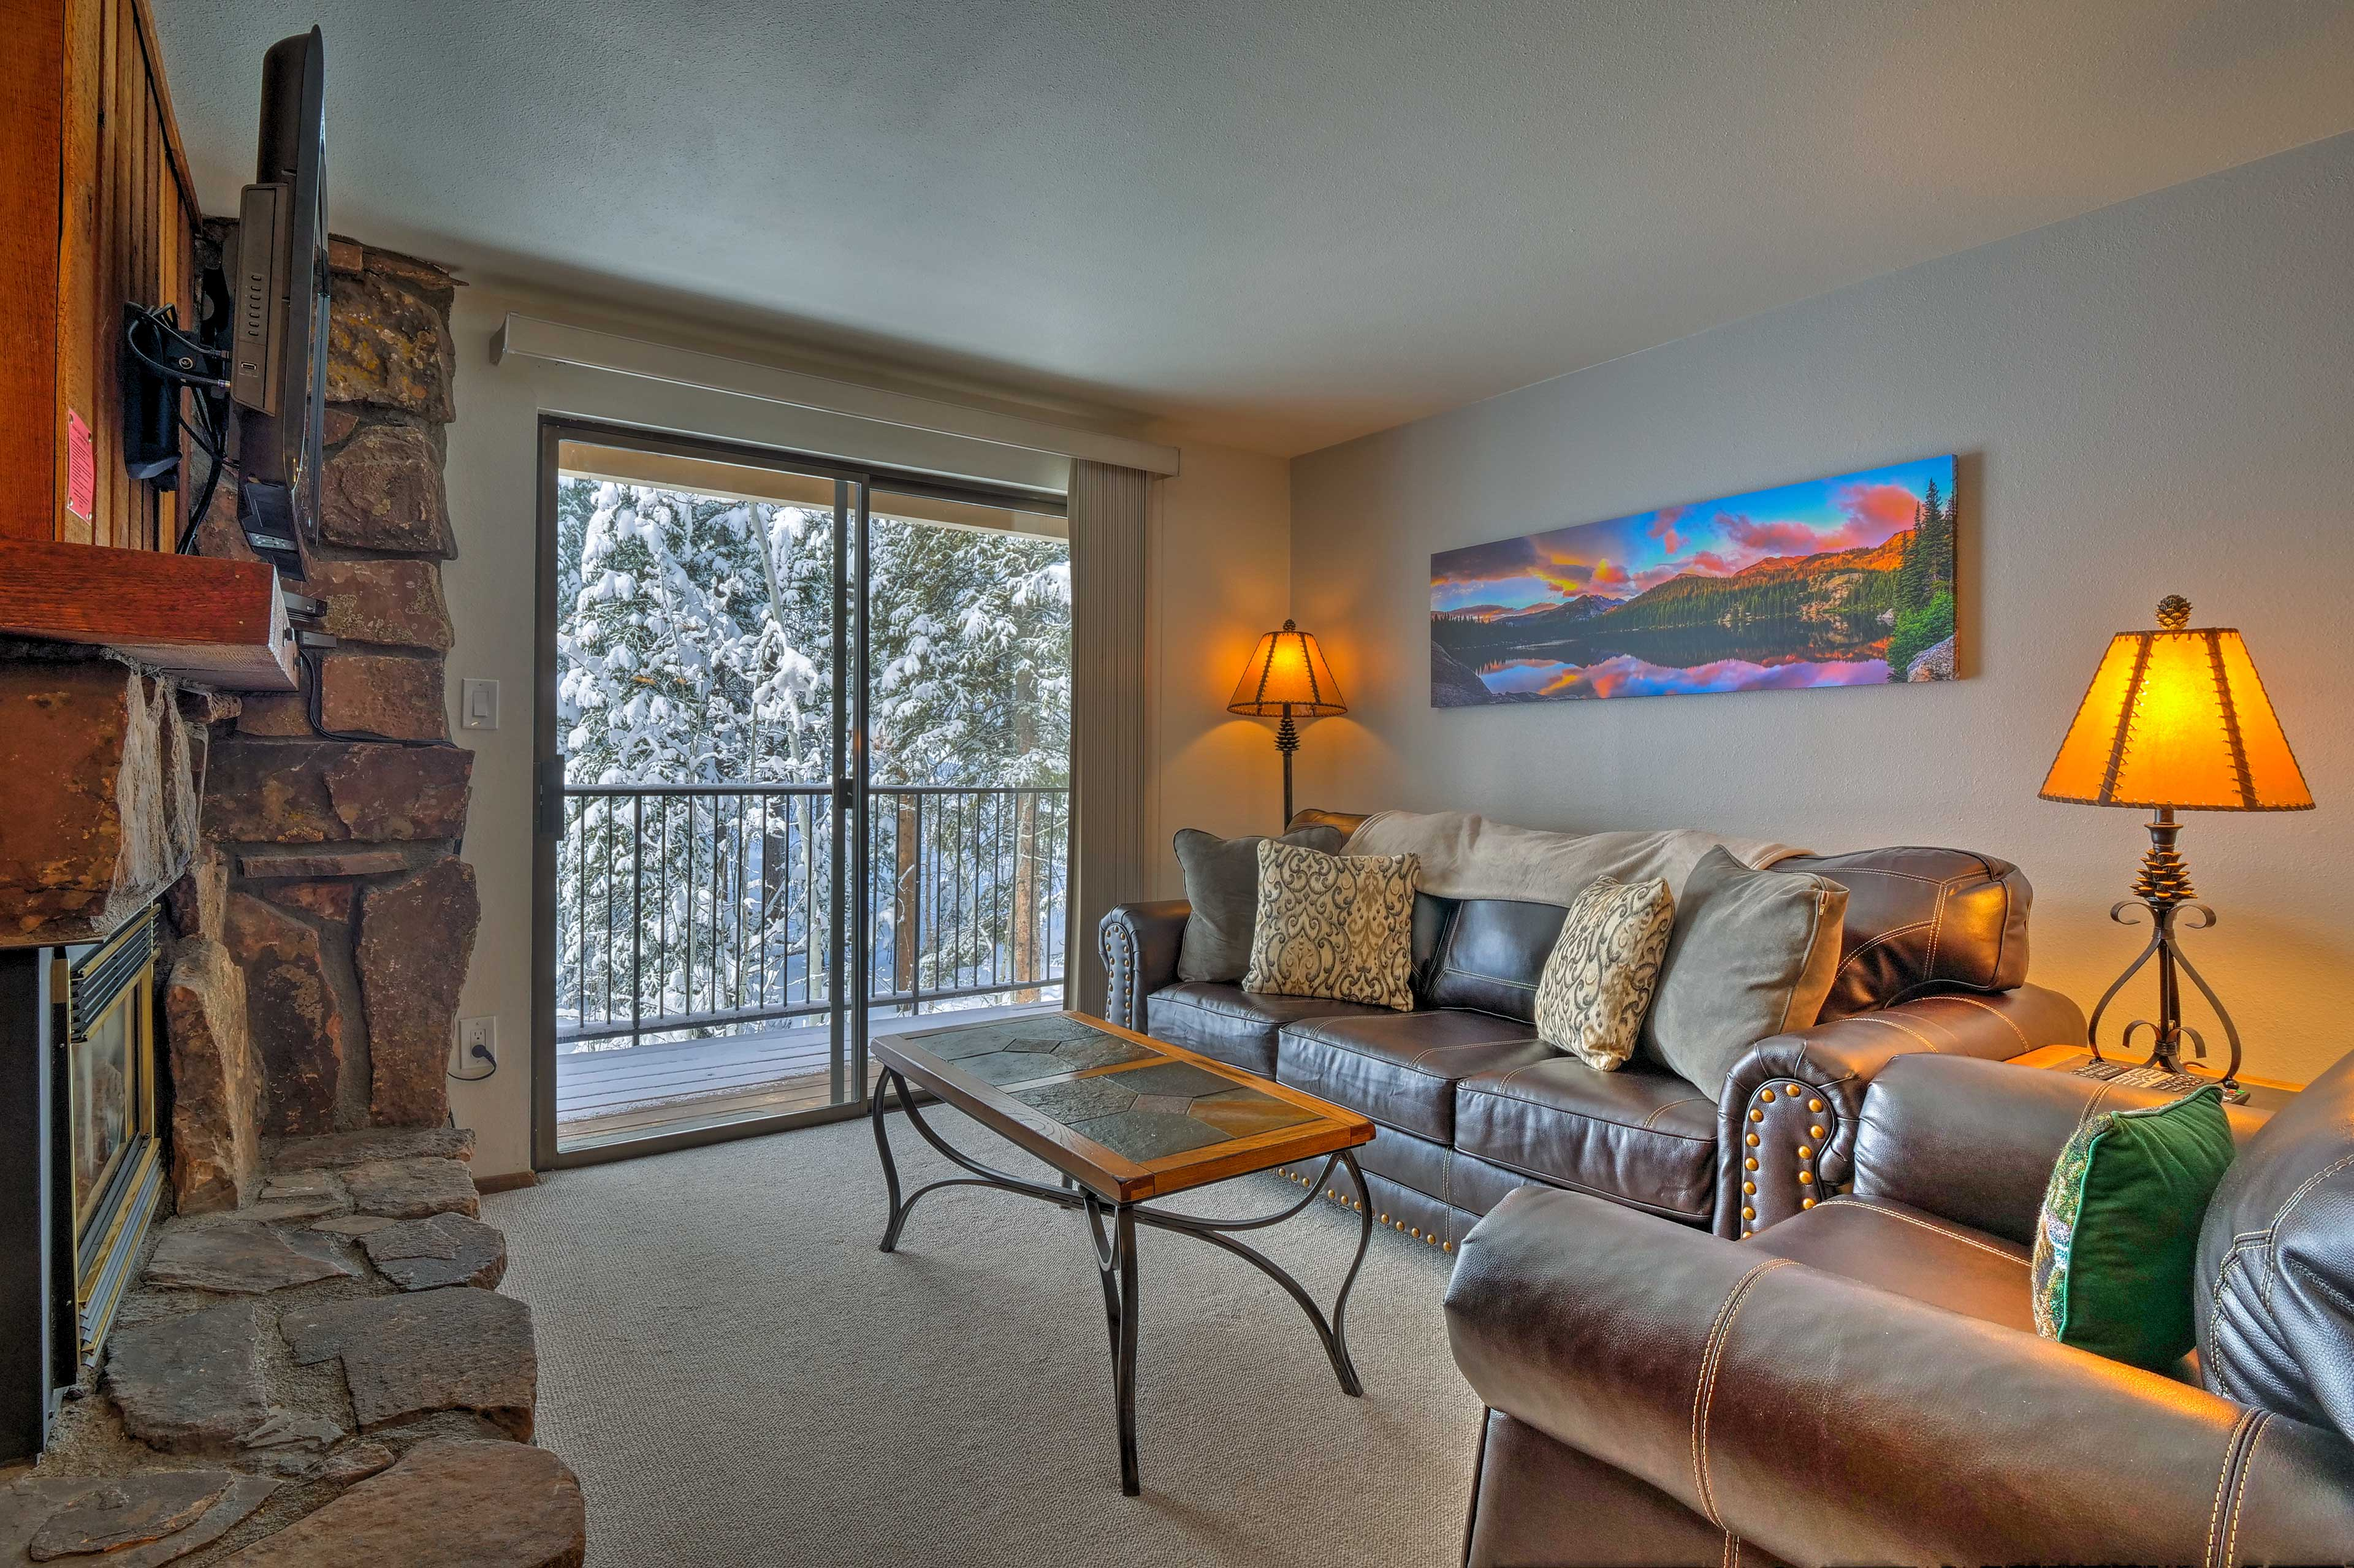 Make the most of your next mountain getaway at this vacation rental condo!